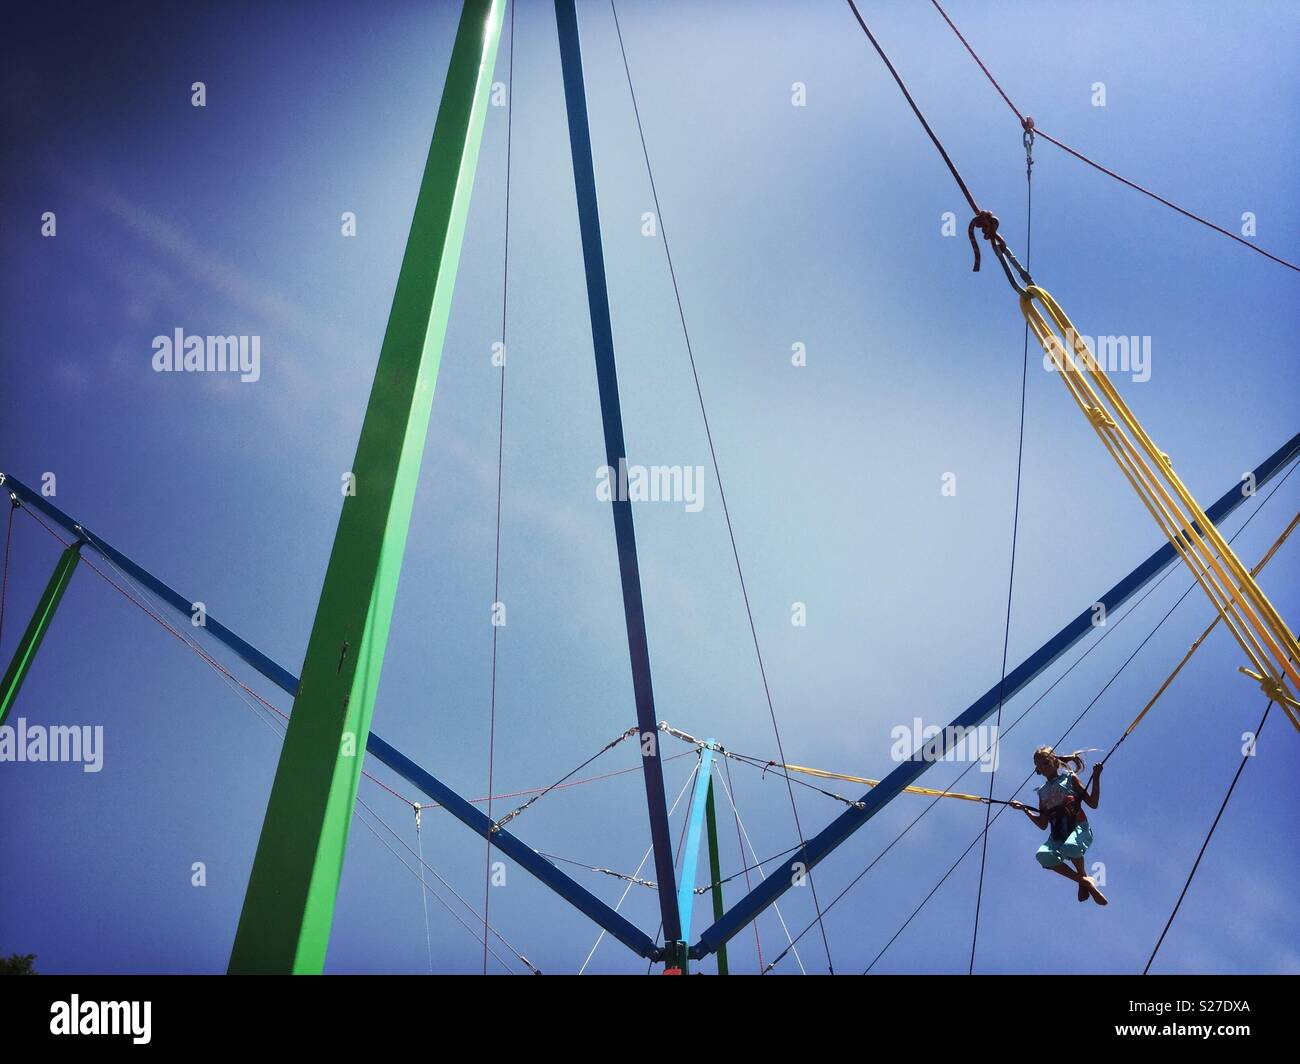 A girl bounces on a trampoline attached to bungee cords in a fairground in Sochi, Russia. - Stock Image